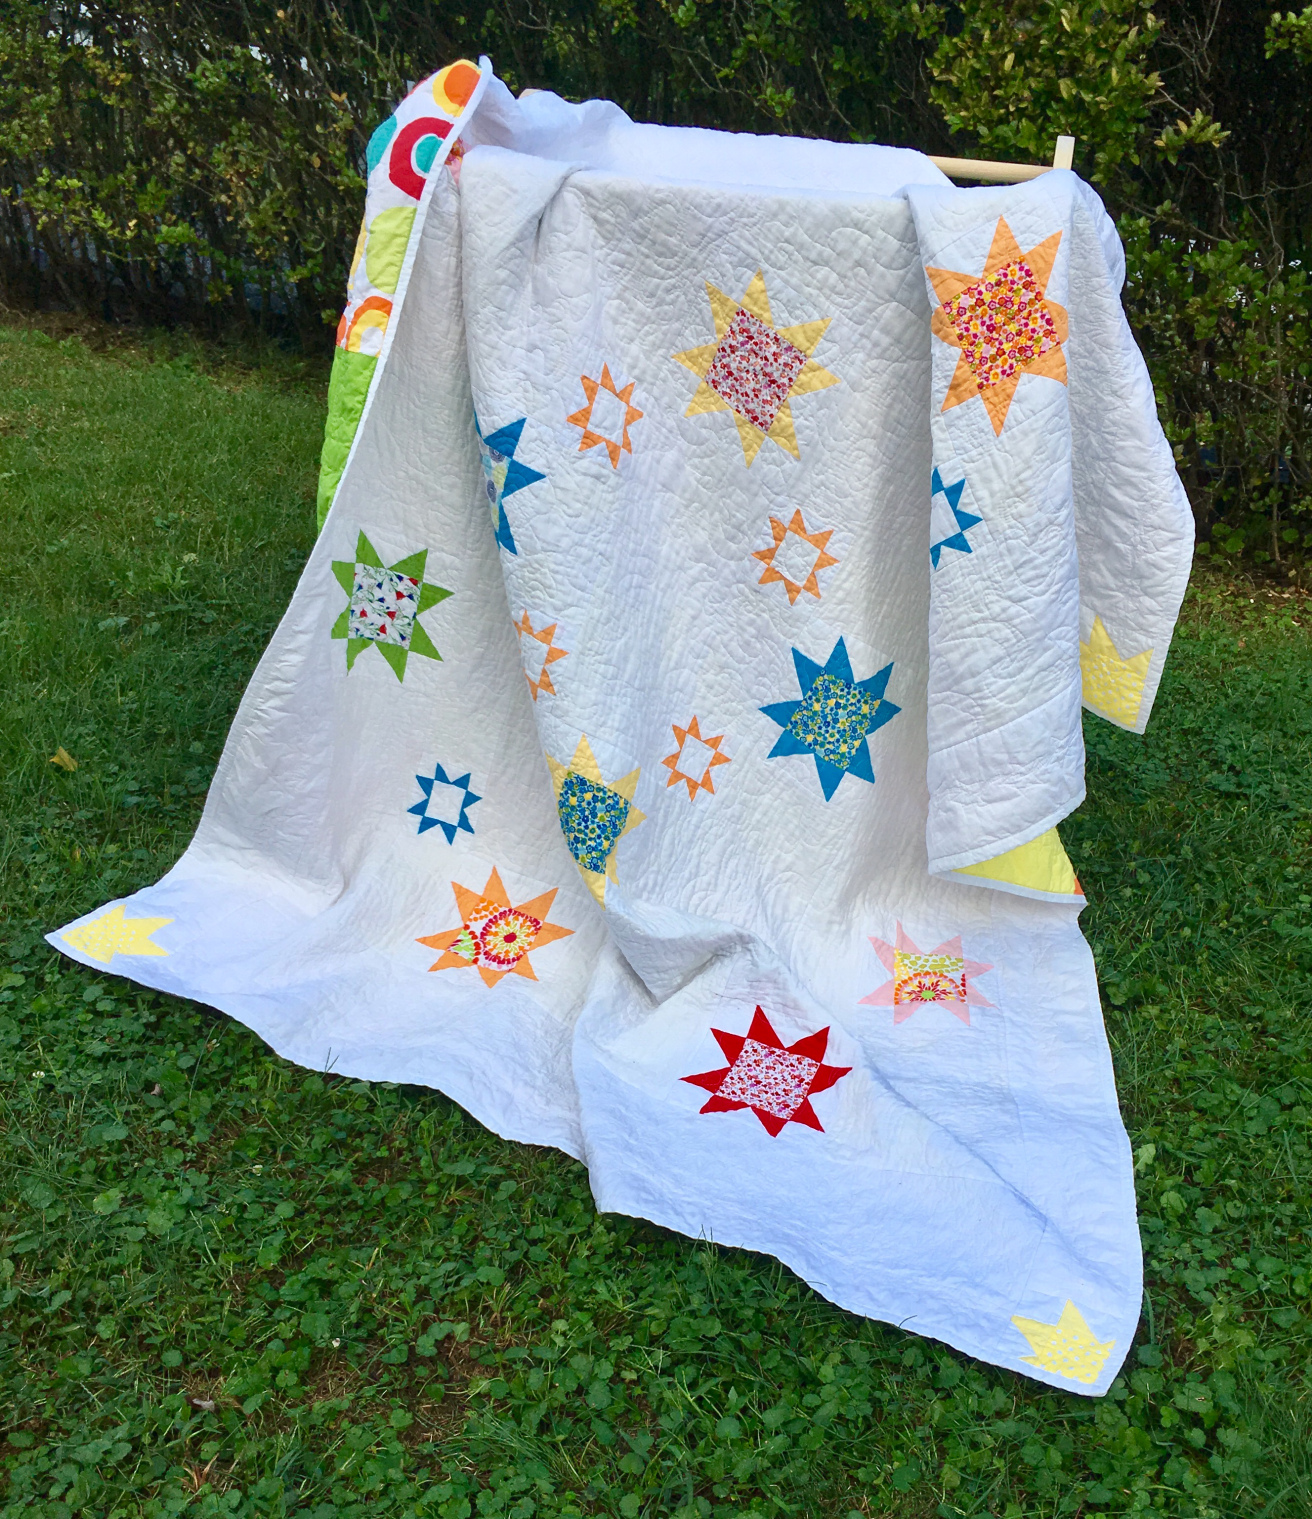 Abbie's Summer Nights quilt from Week 38